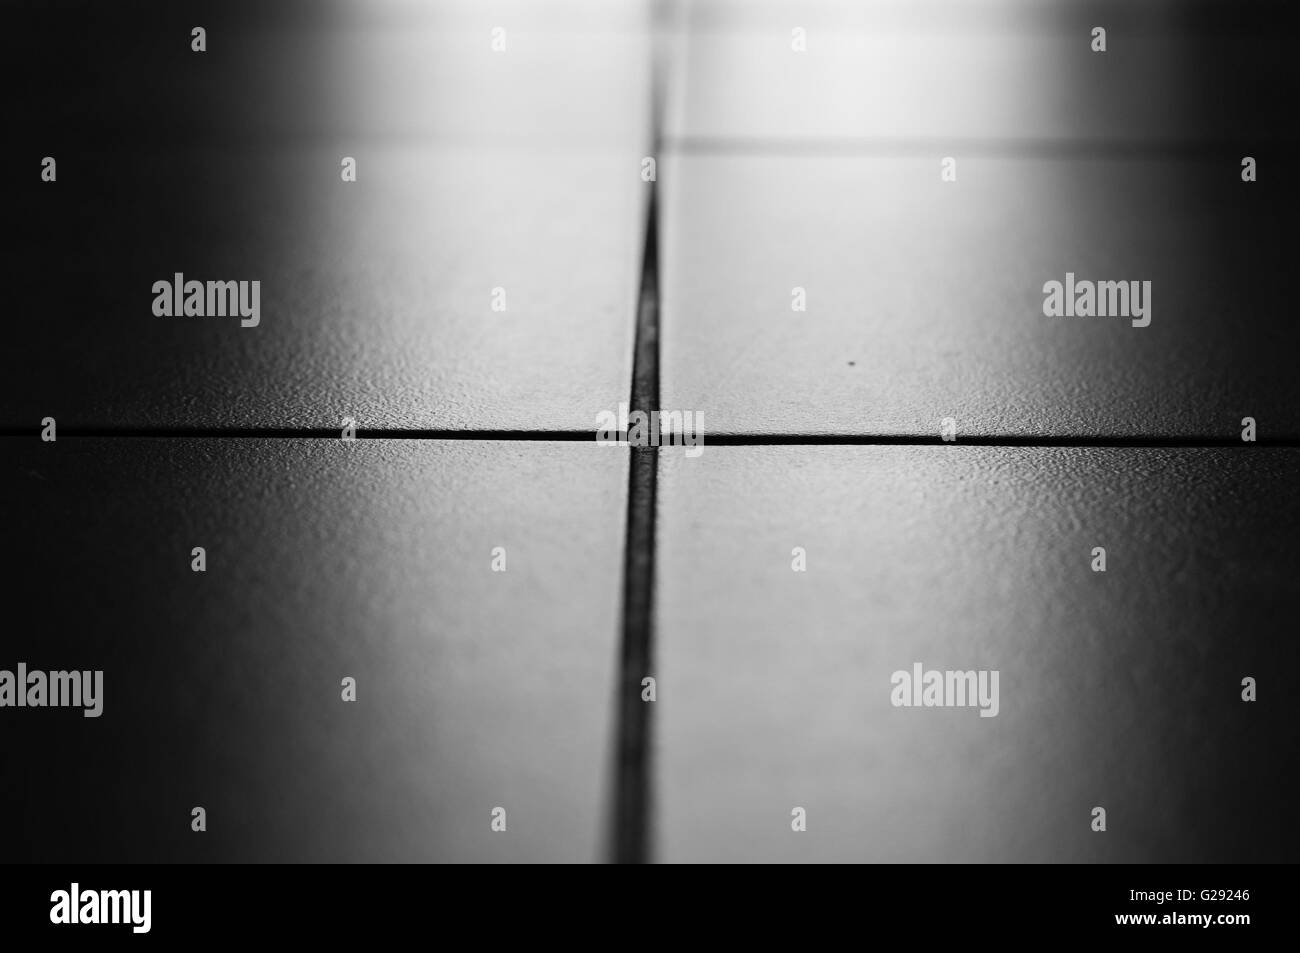 Tiles on the floor with backlight black and white photo stock tiles on the floor with backlight black and white photo dailygadgetfo Images